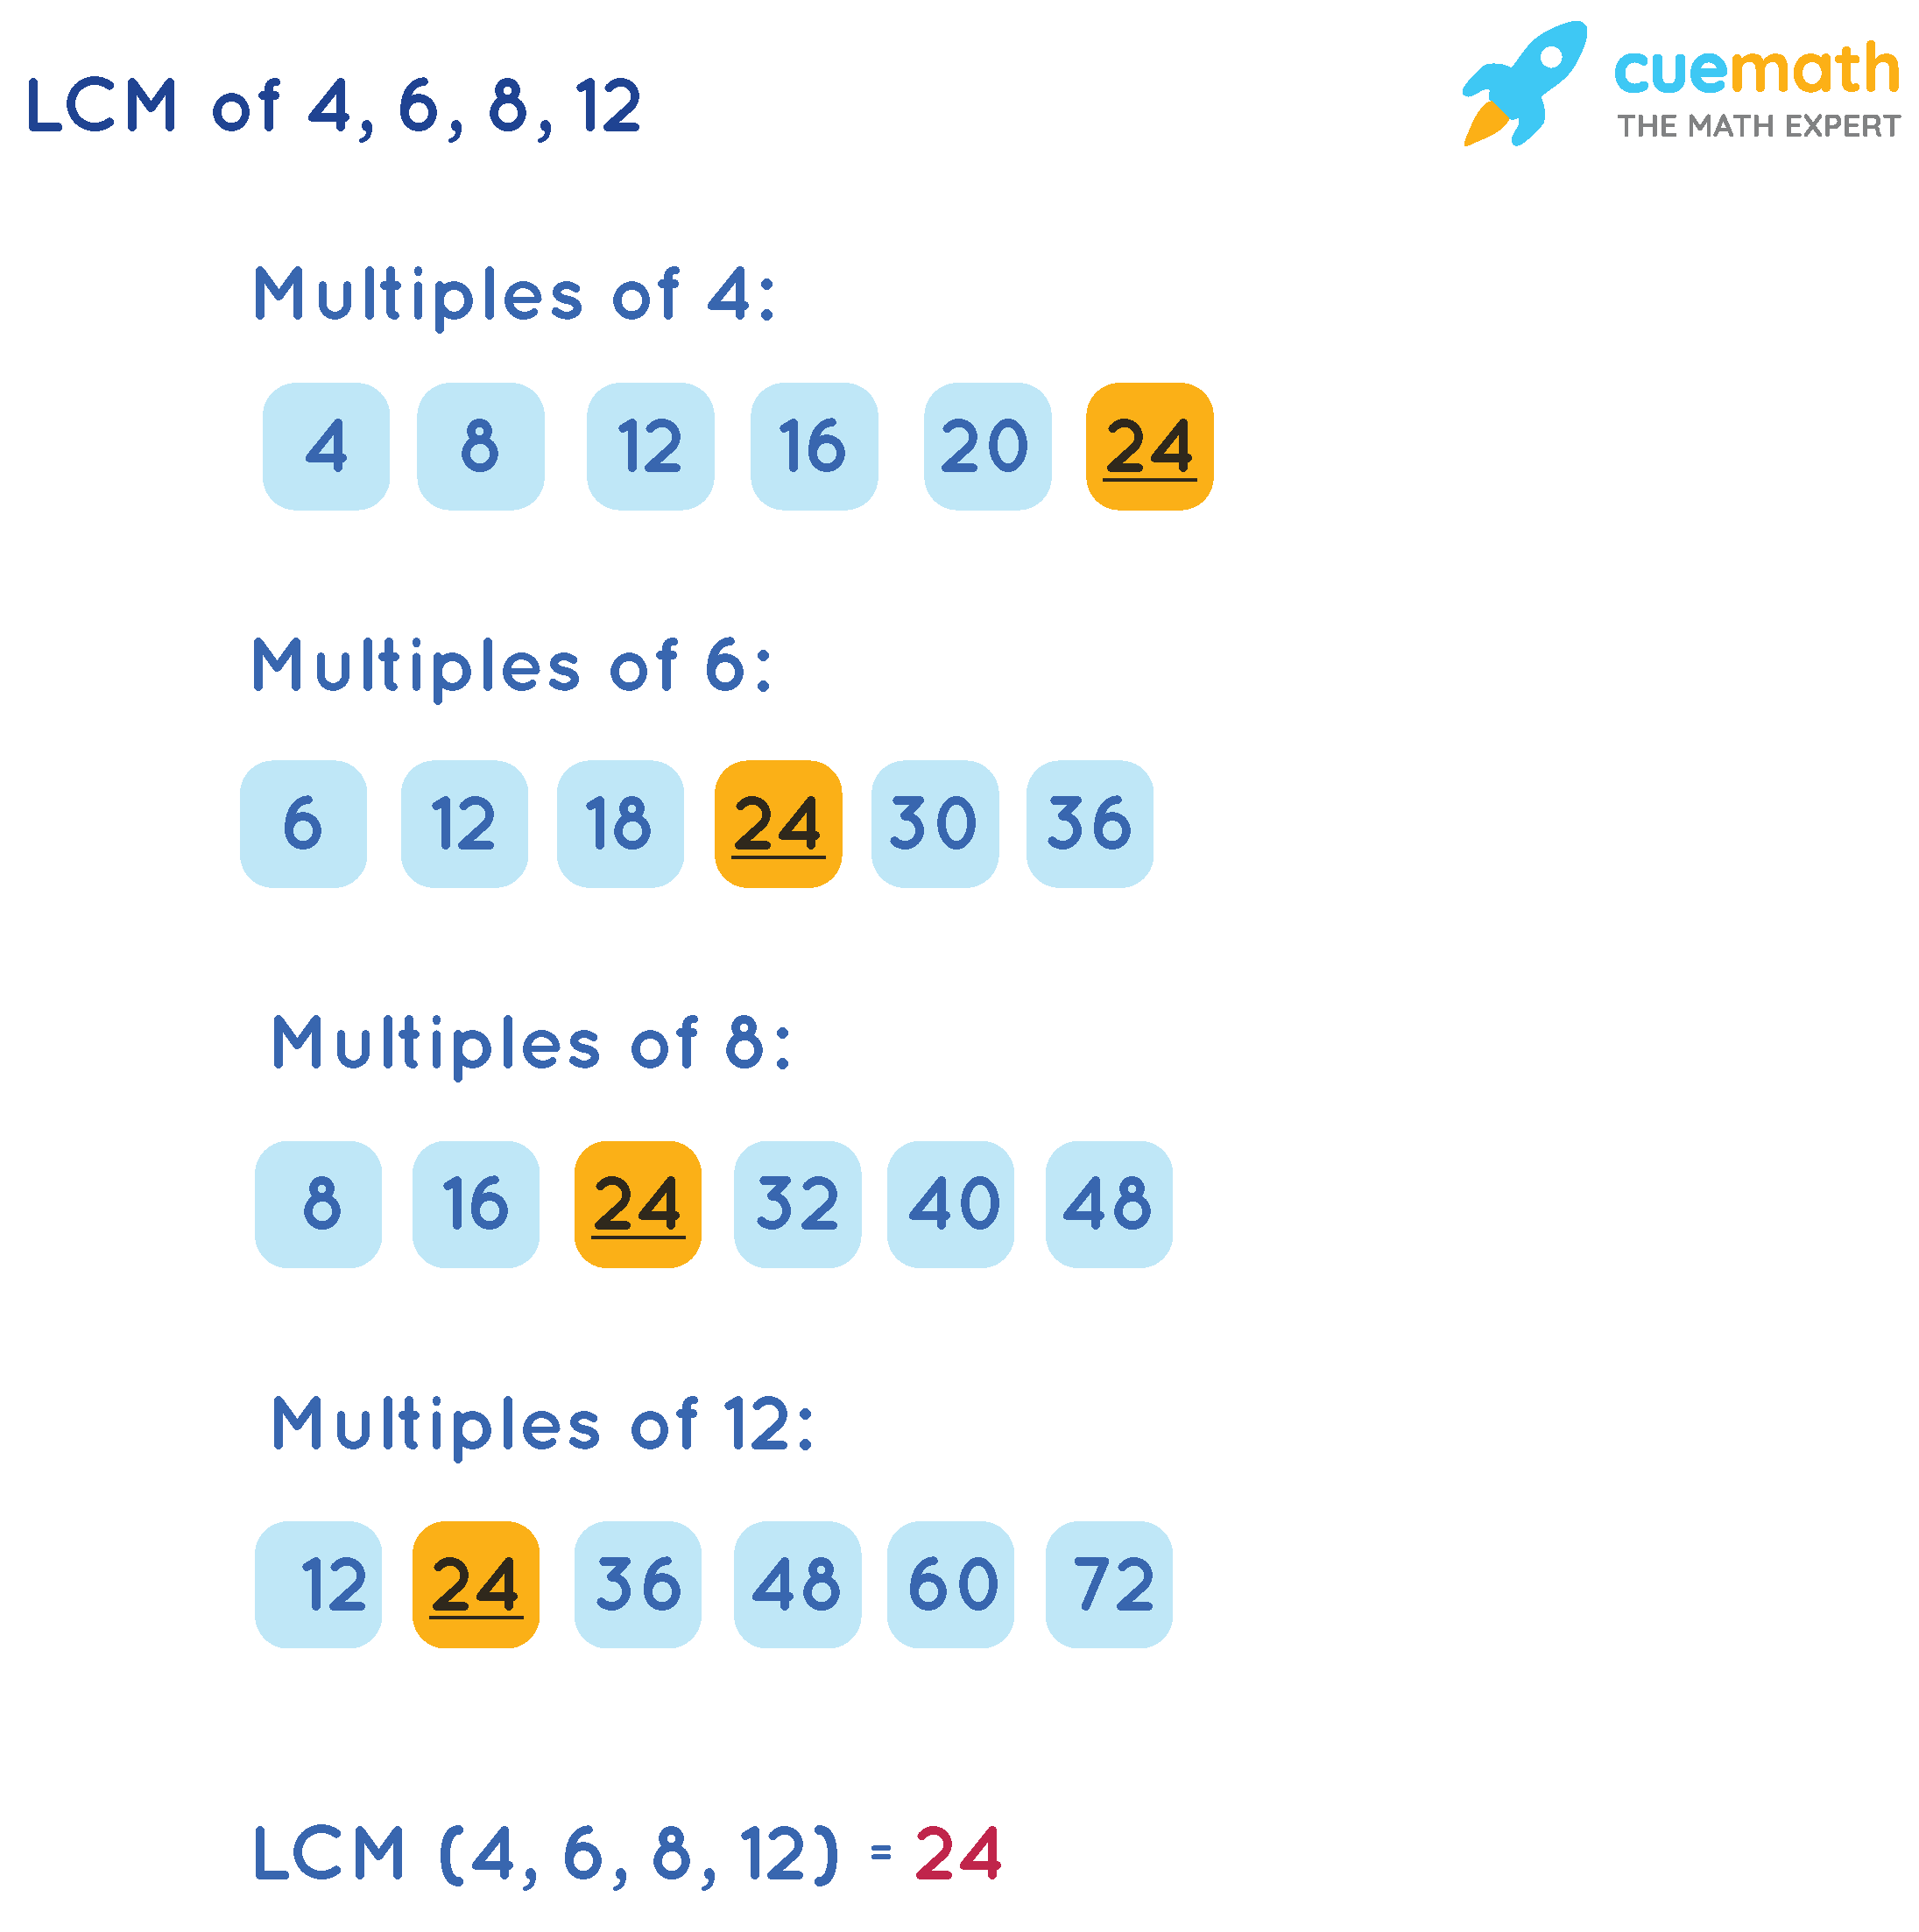 LCM of 4, 6, 8, 12